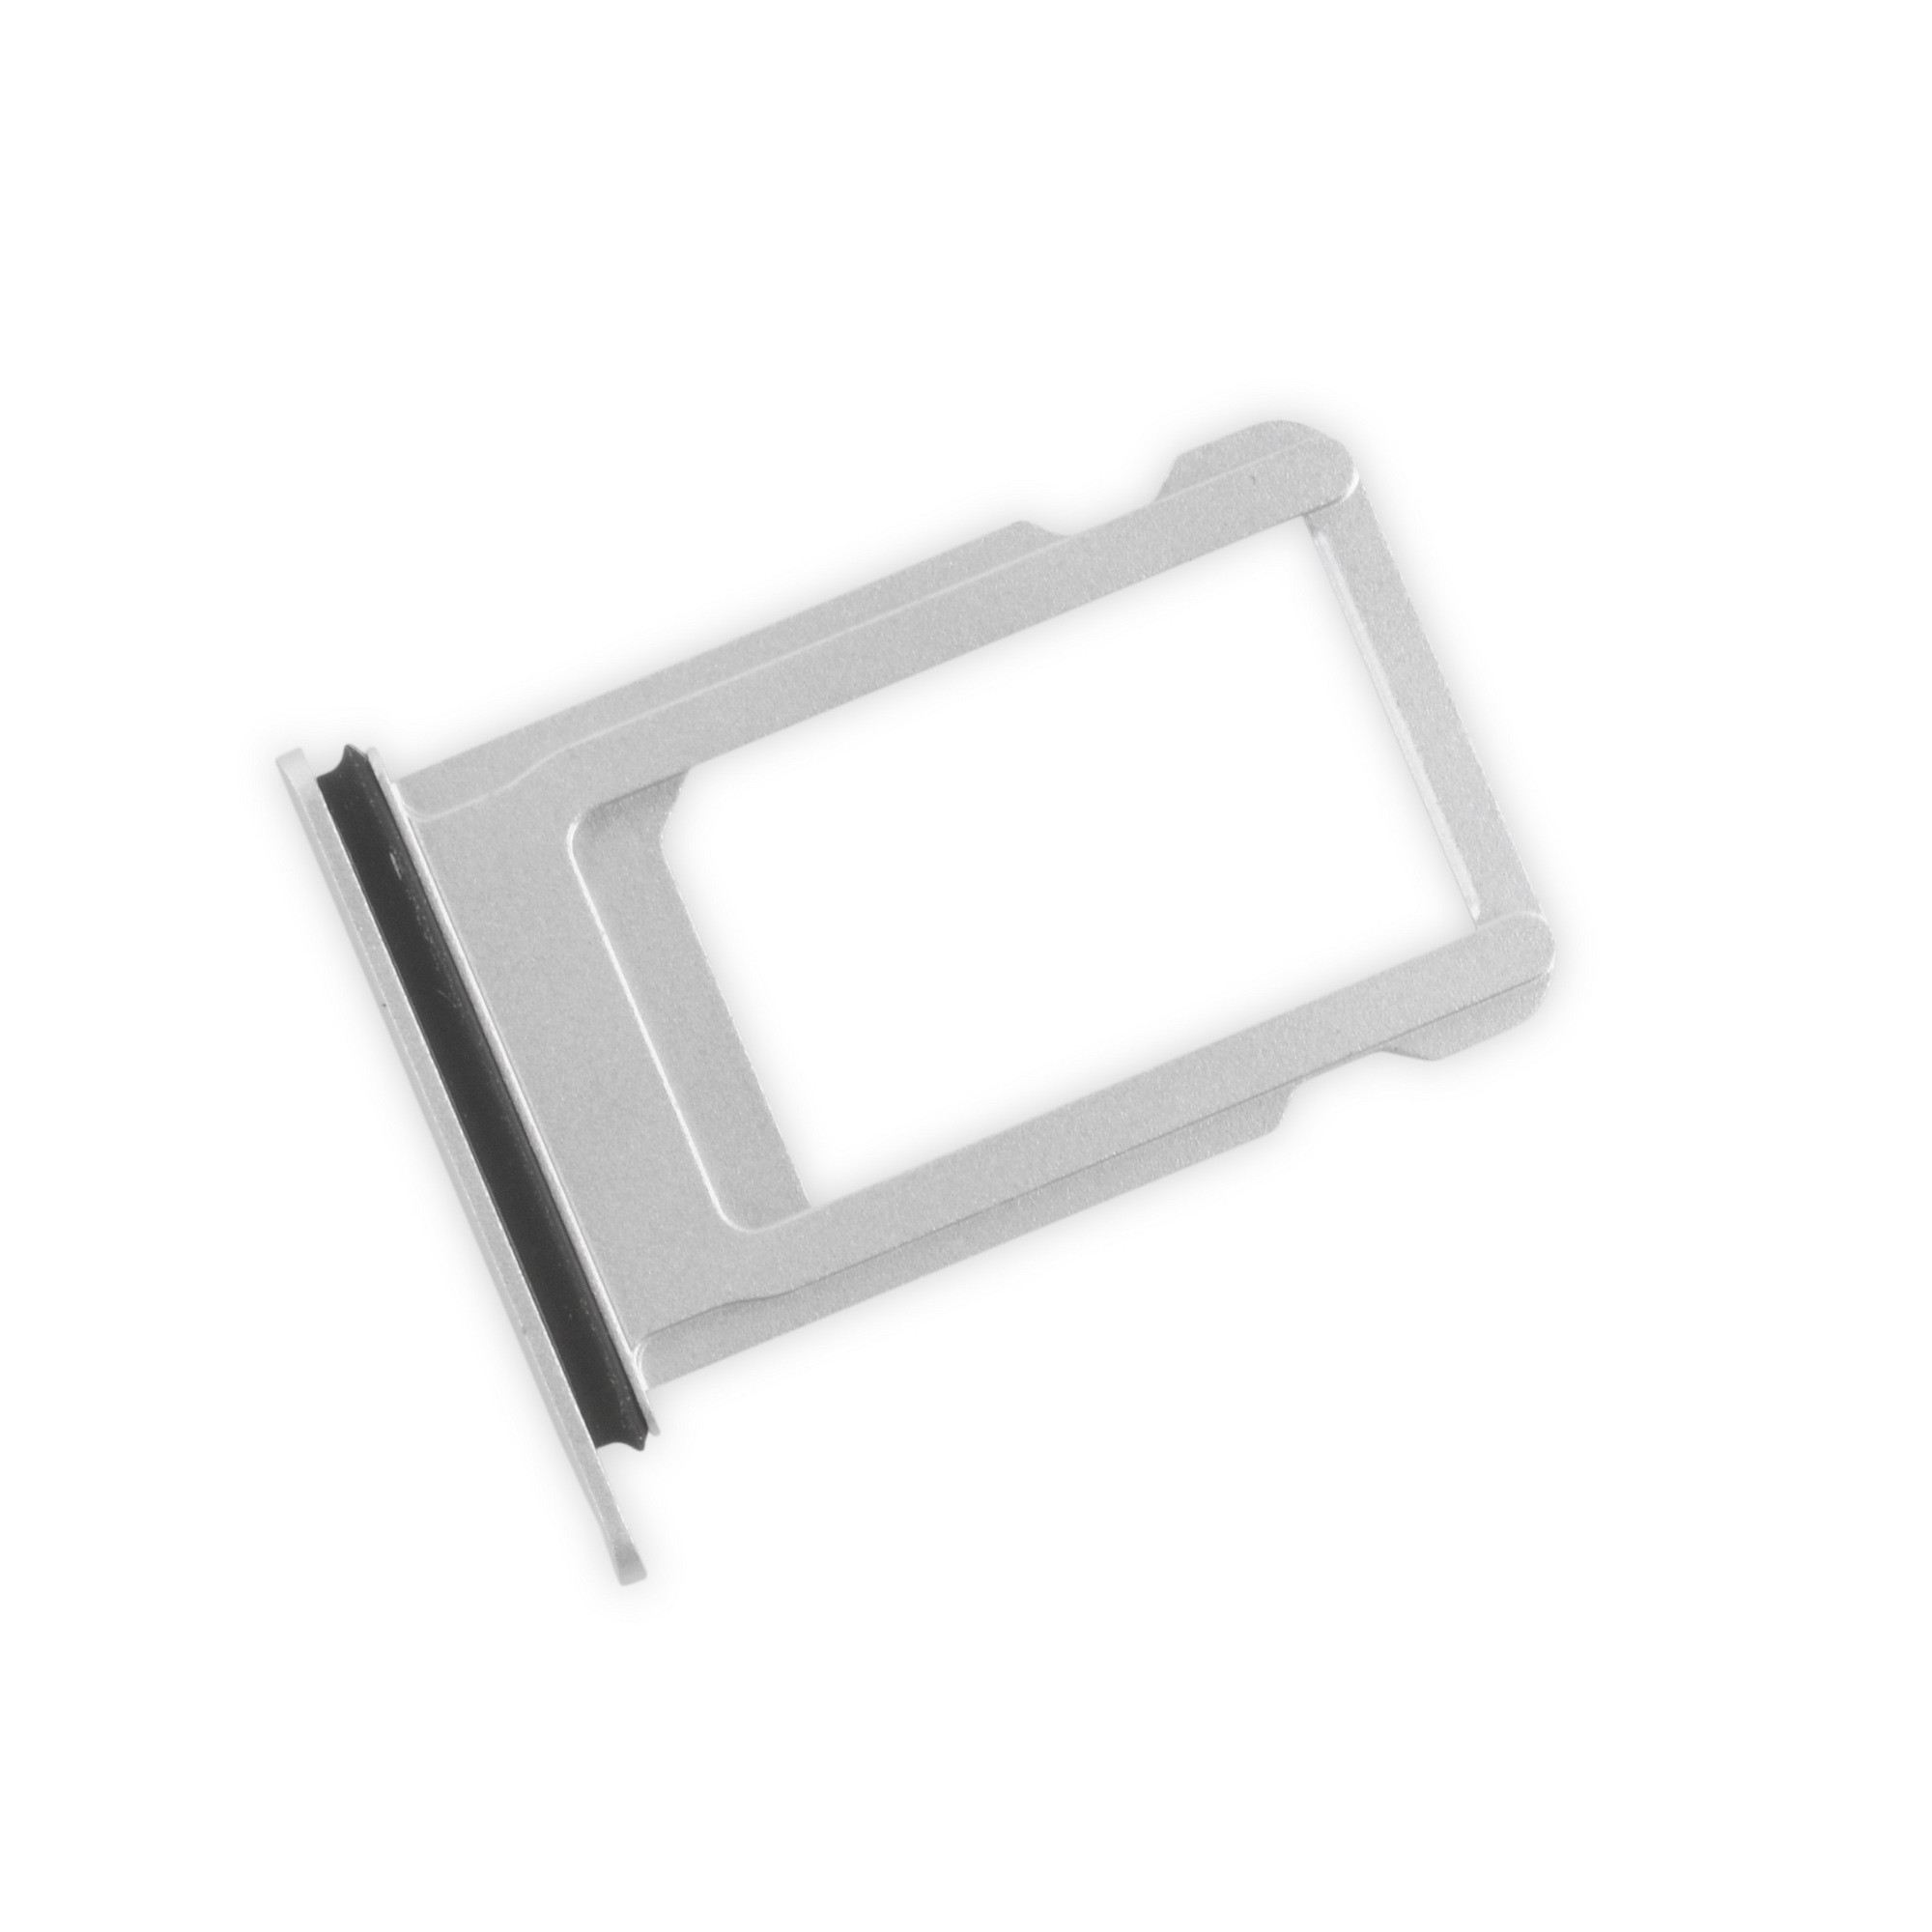 iPhone 7 SIM Card Tray, Brand New - Silver, I7A-016